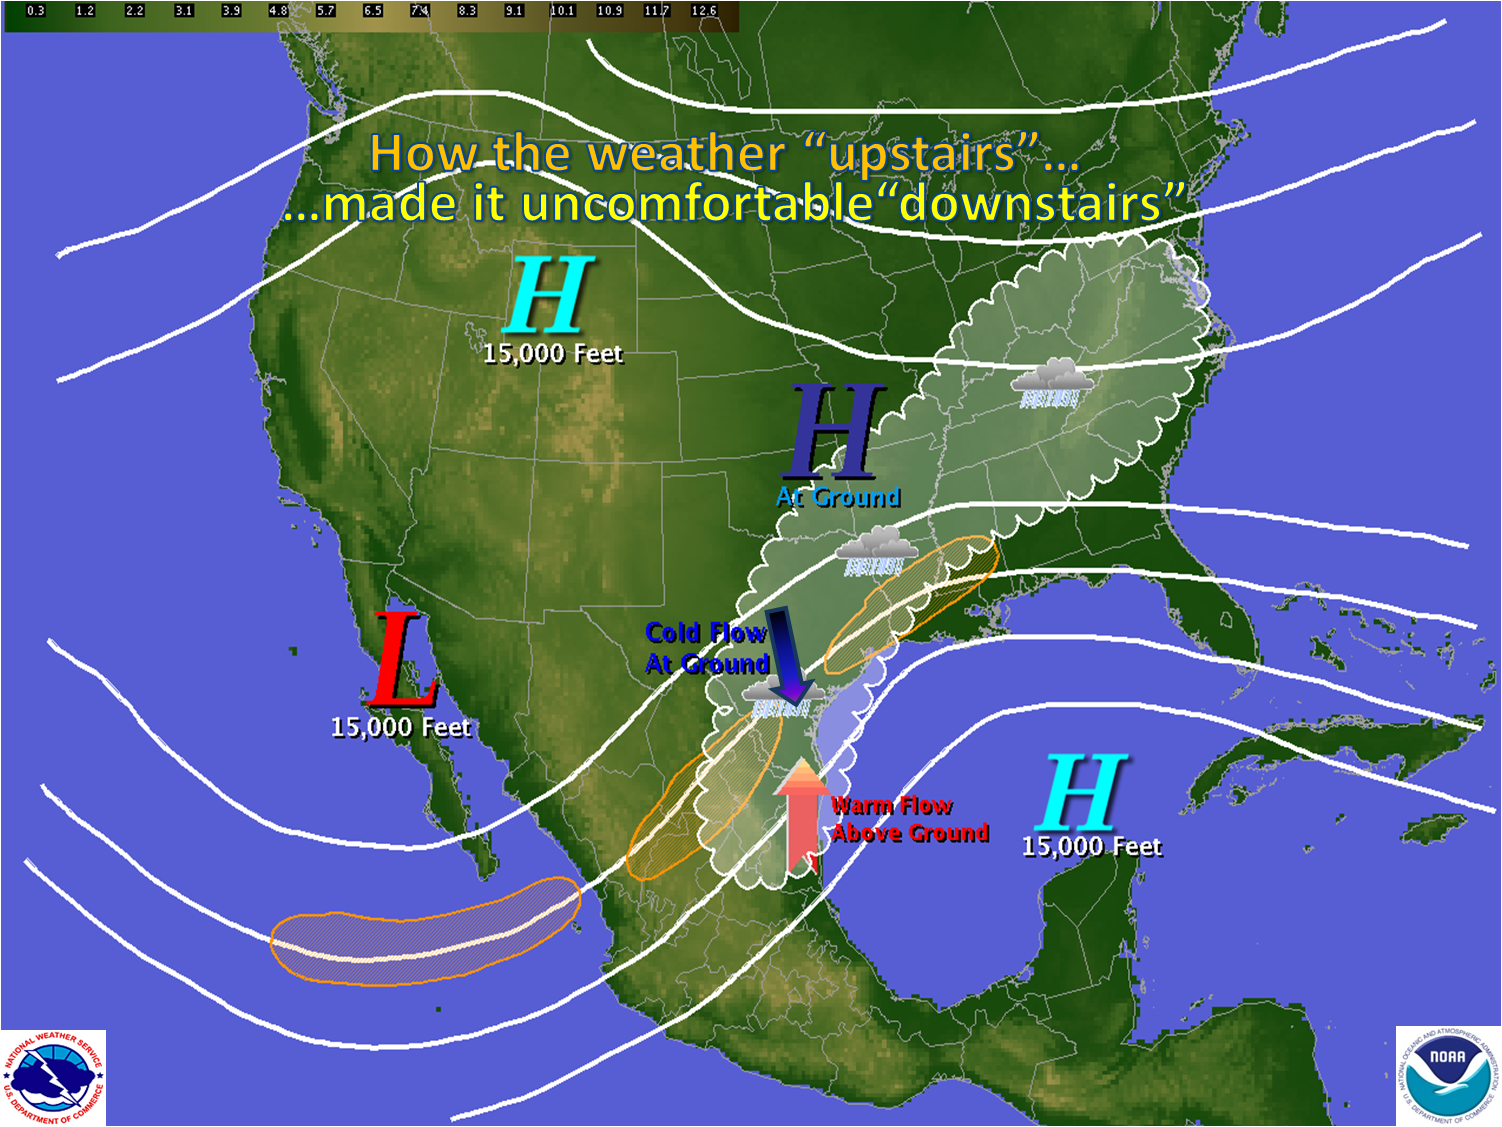 NWS Brownsville Staffs The RGV Wing Of Commemorative Air Force Air - Us weather map barometric pressure